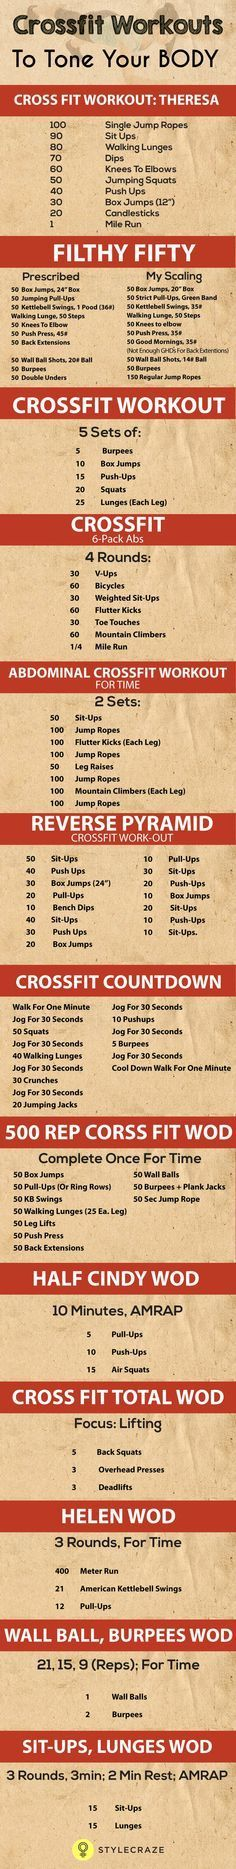 20 Effective Crossfit Workouts To Tone Your Body